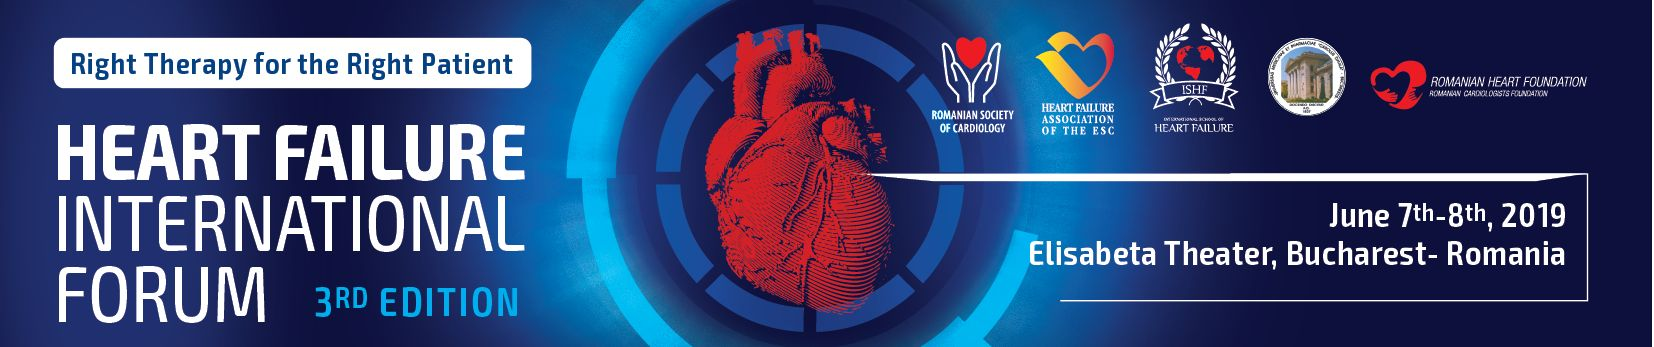 heart-failure-international-forum-2019-bucharest